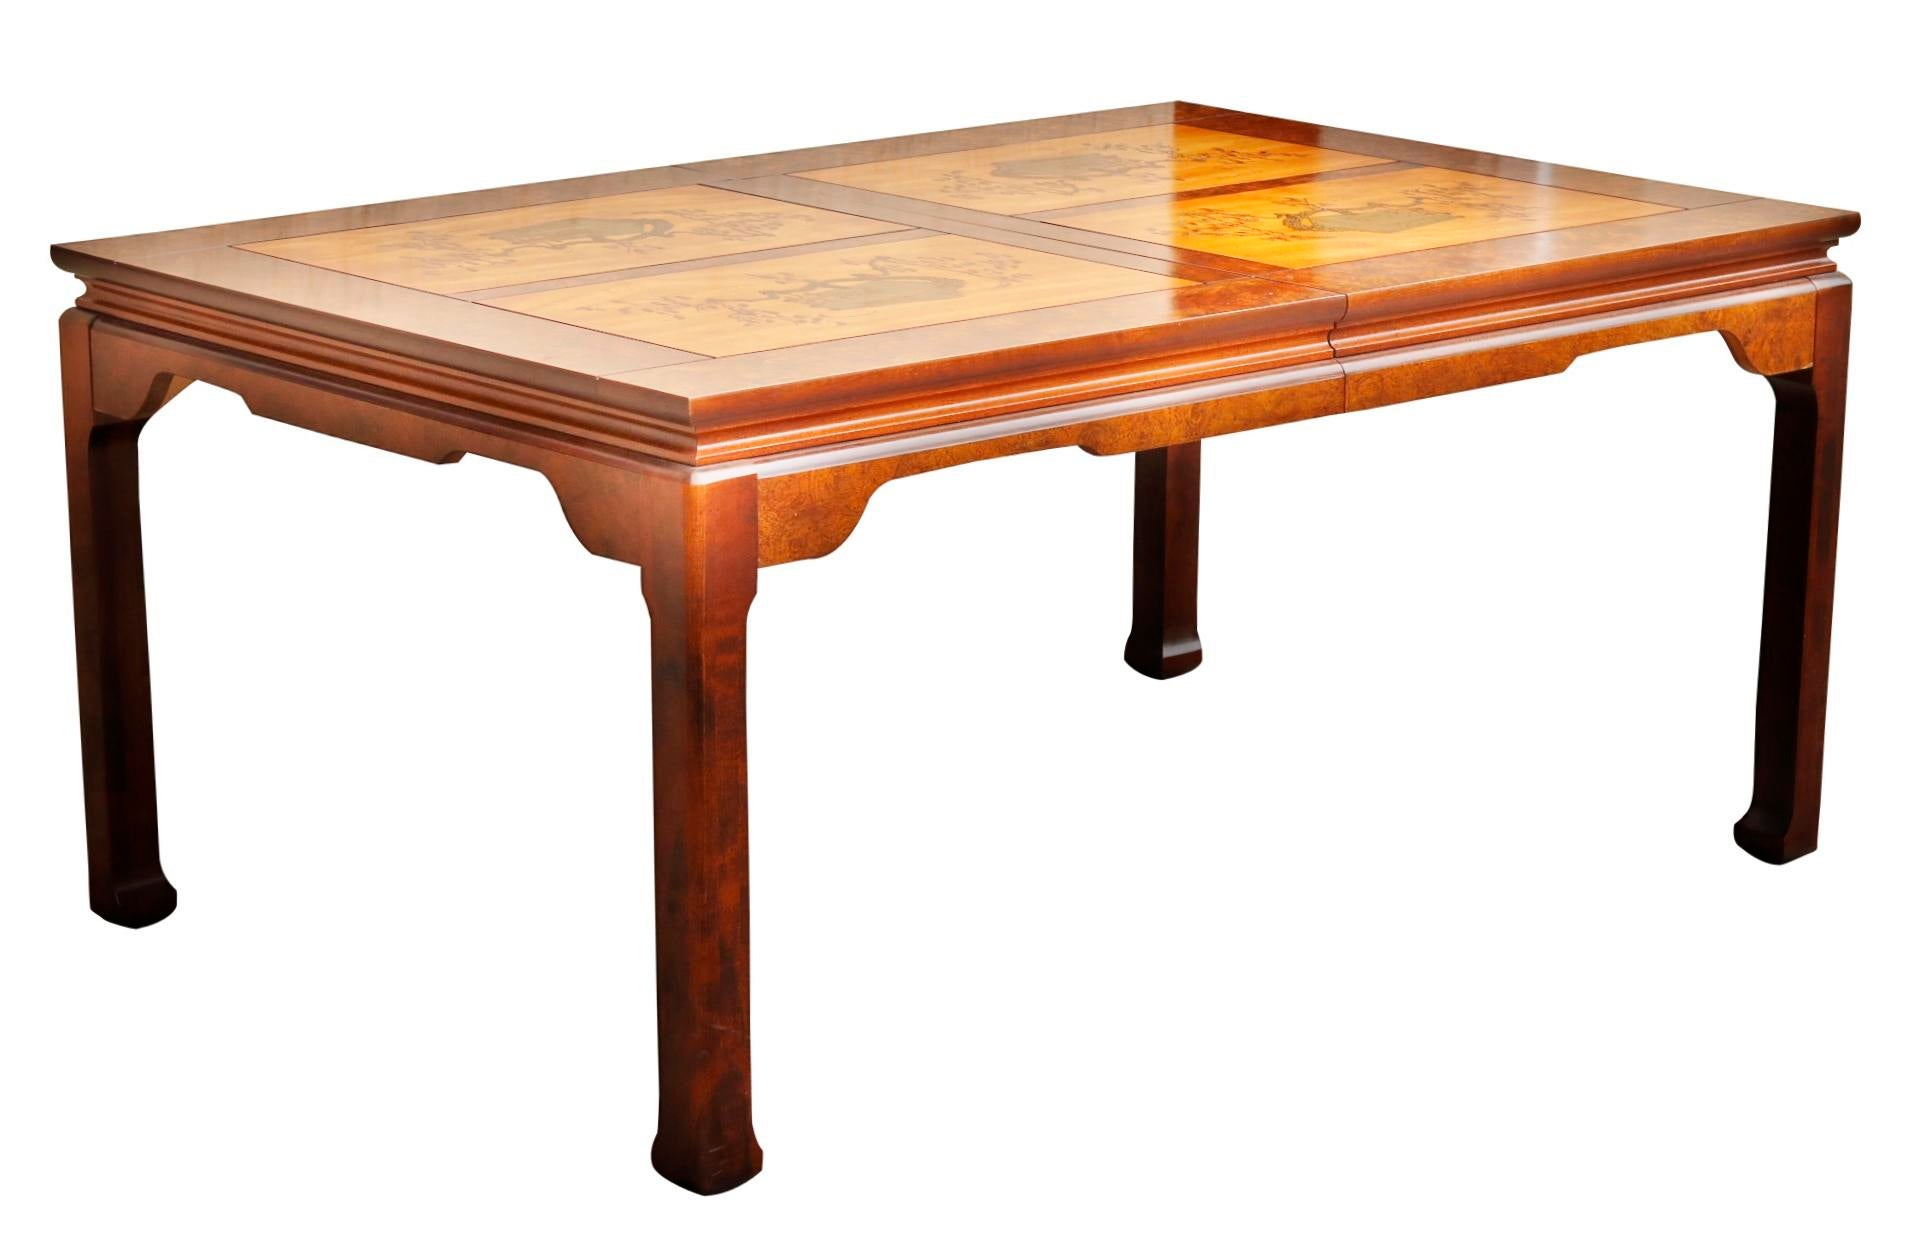 Ming Style Dining Table By Bassett Furniture Company   Image 2 Of 6